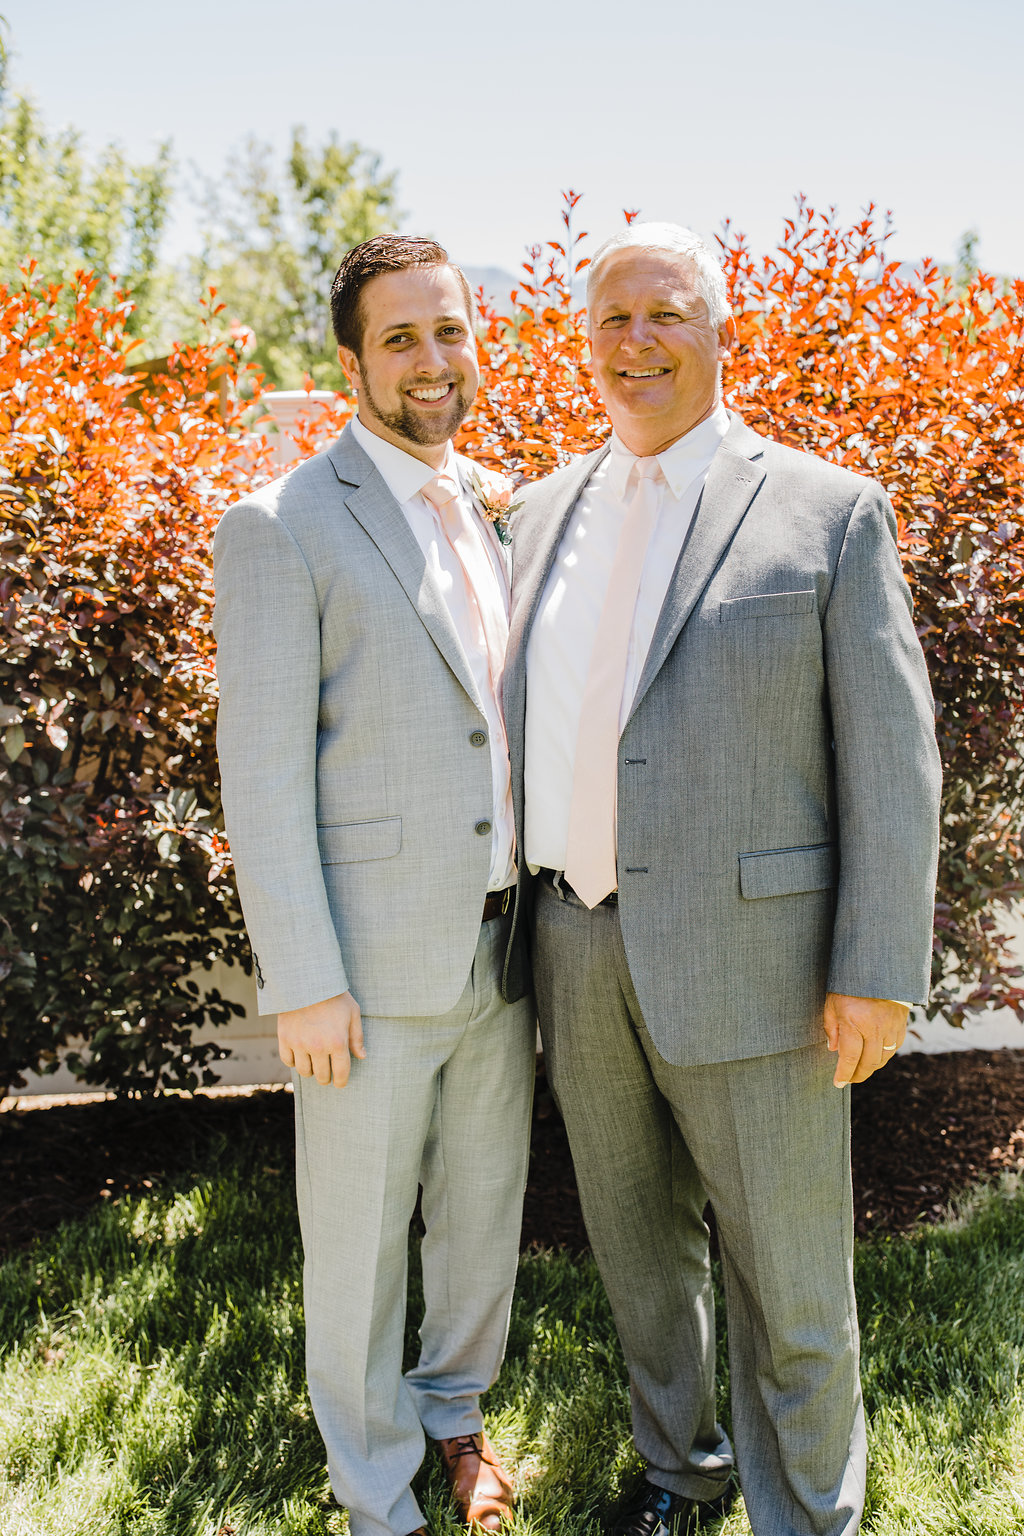 groom and father wedding day photography family photos grey suits central utah wedding photographer calli richards